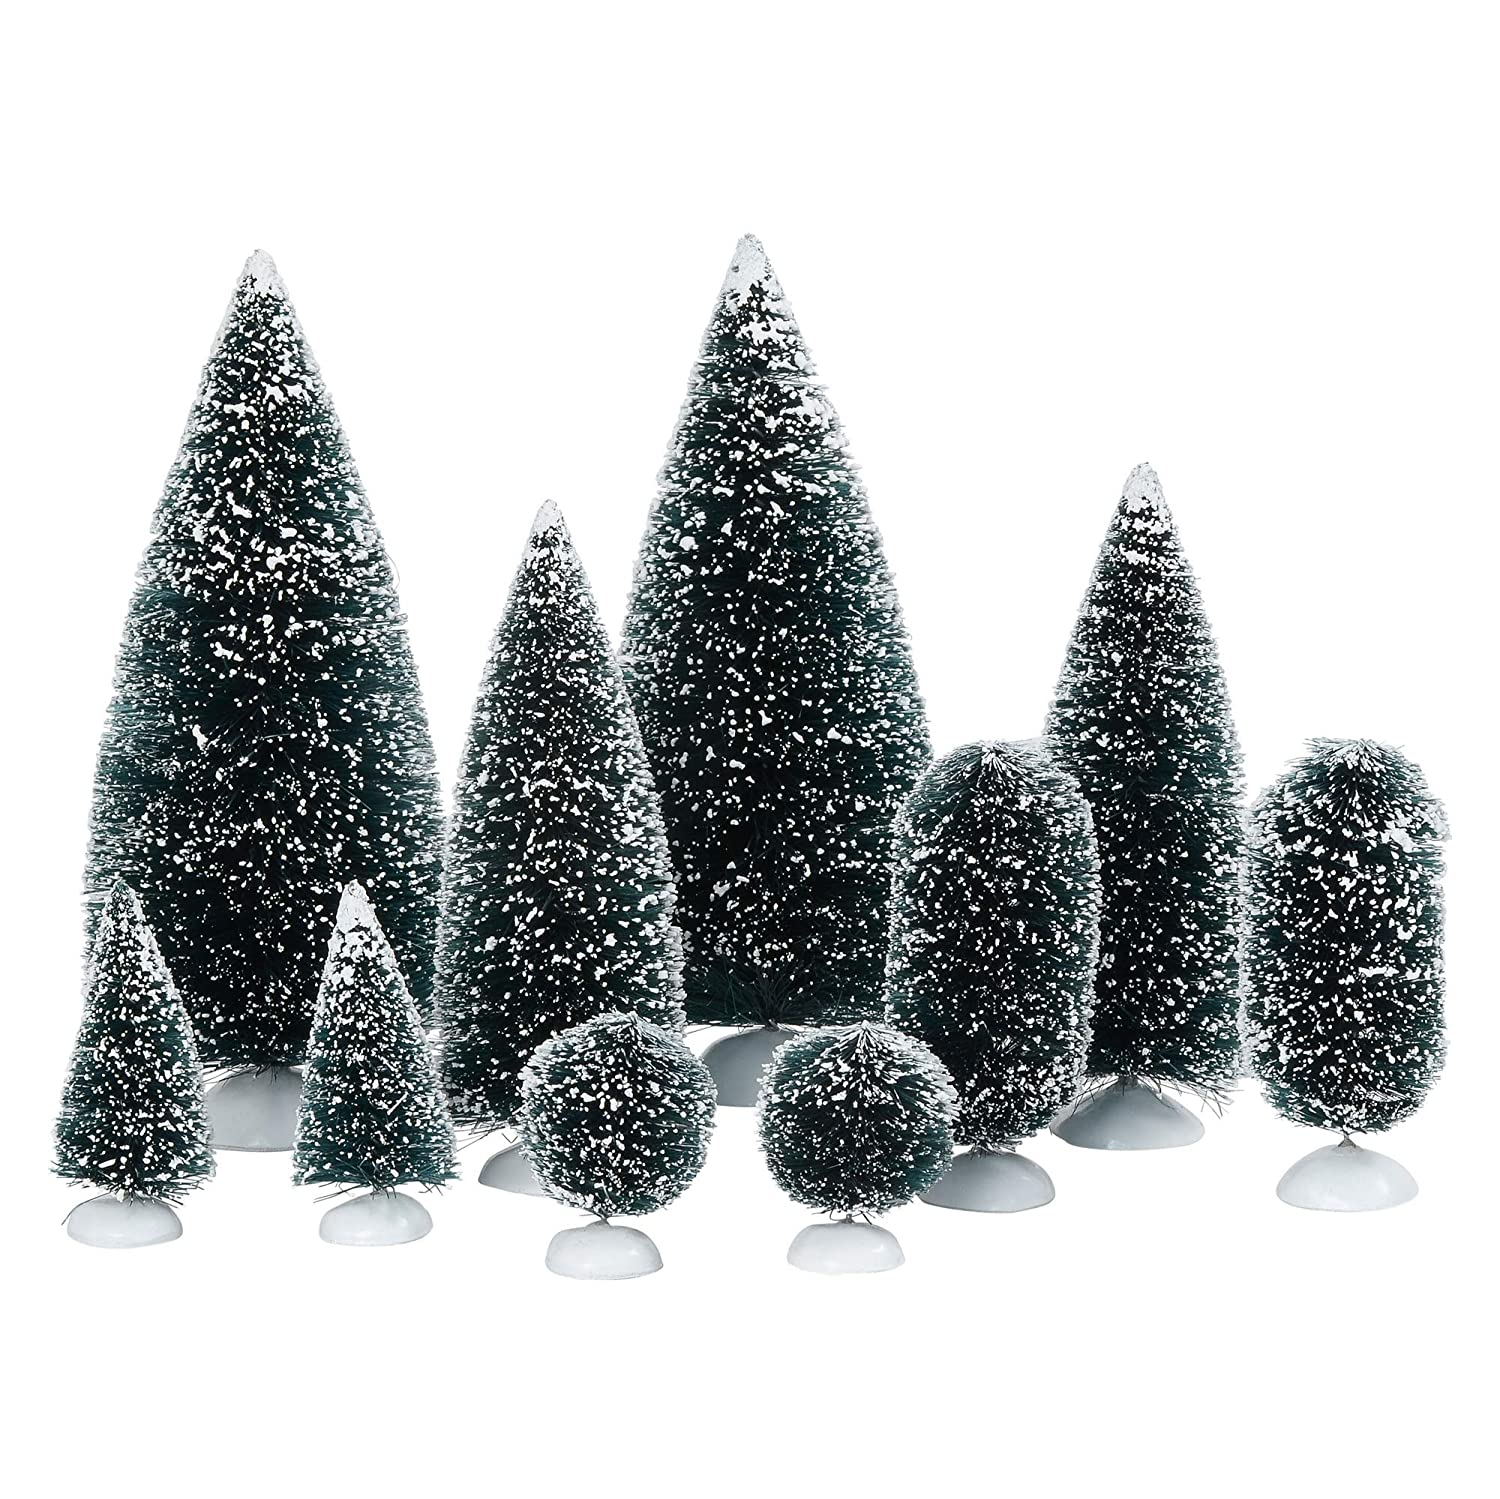 Department 56 Accessories for Villages Bag-O-Frosted Topiaries Tree 56.52996